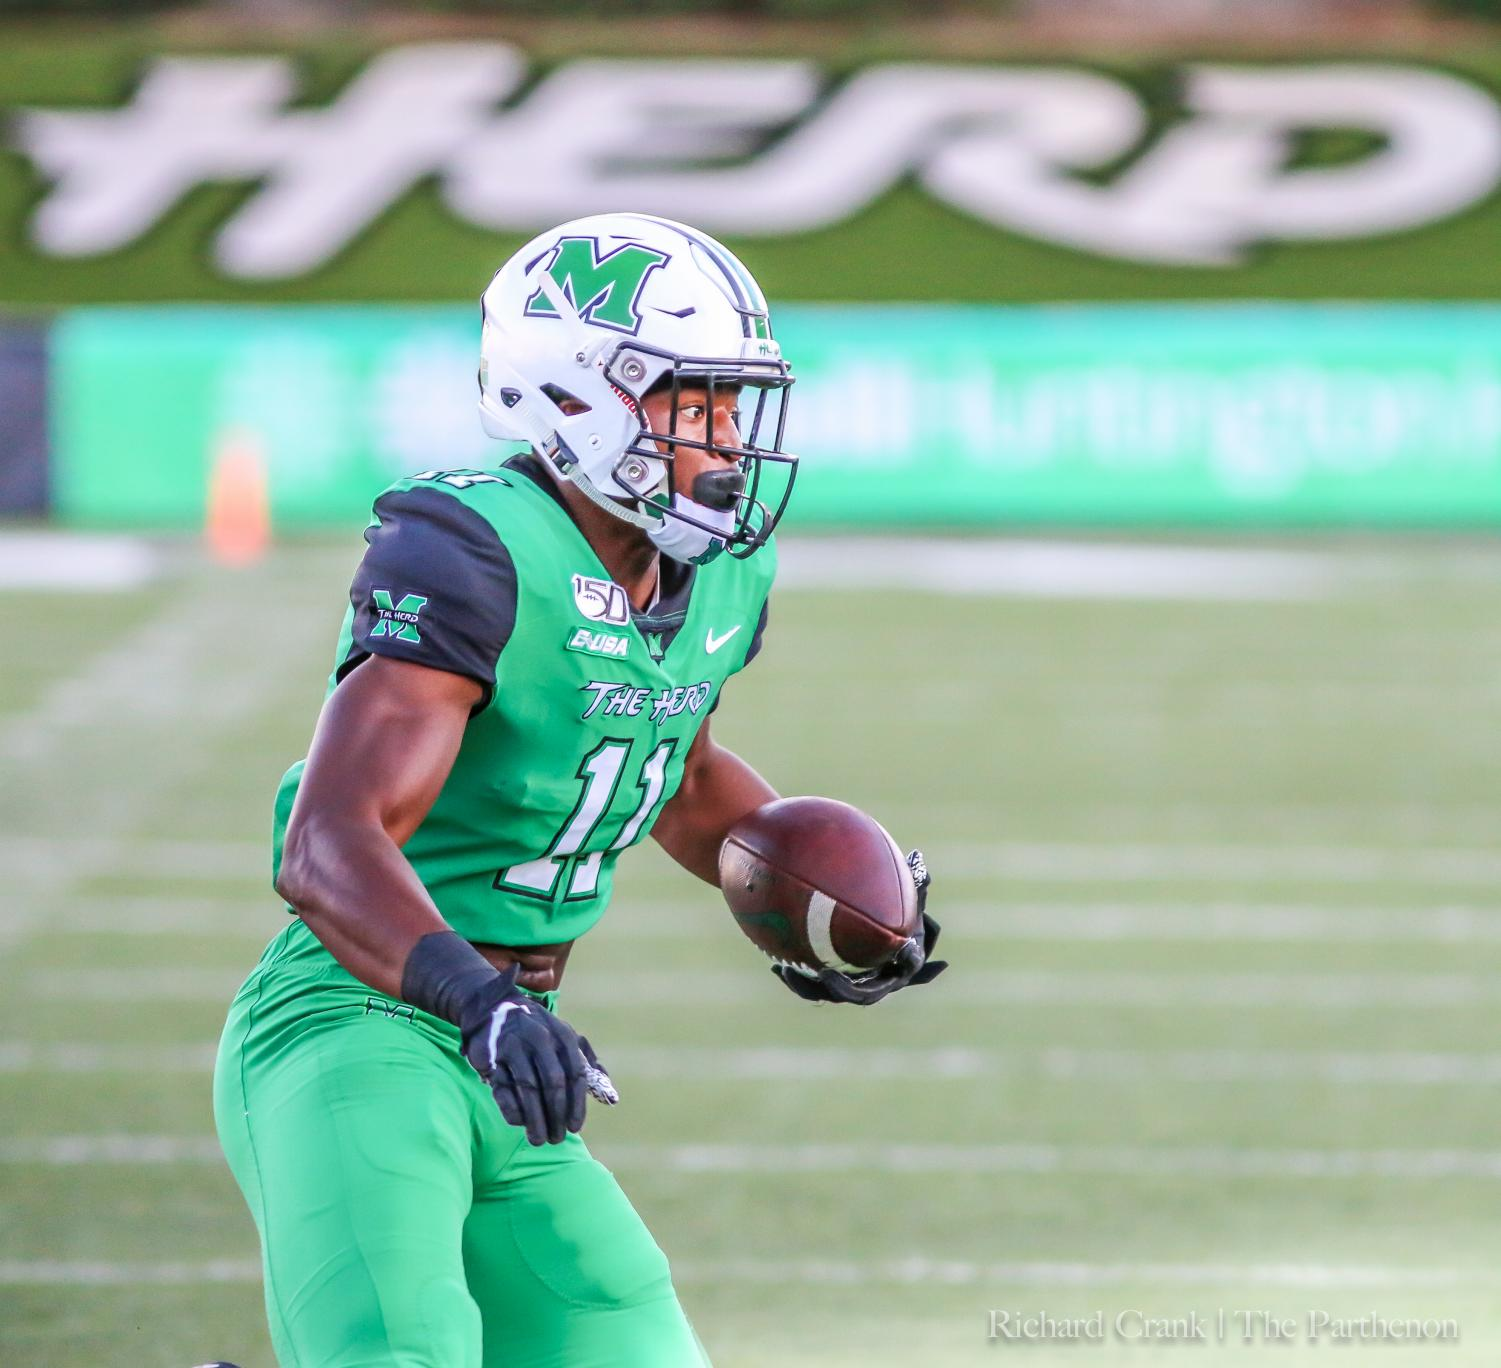 Xavier Gaines runs the ball for the Herd in the game against Ohio on Sept. 14.